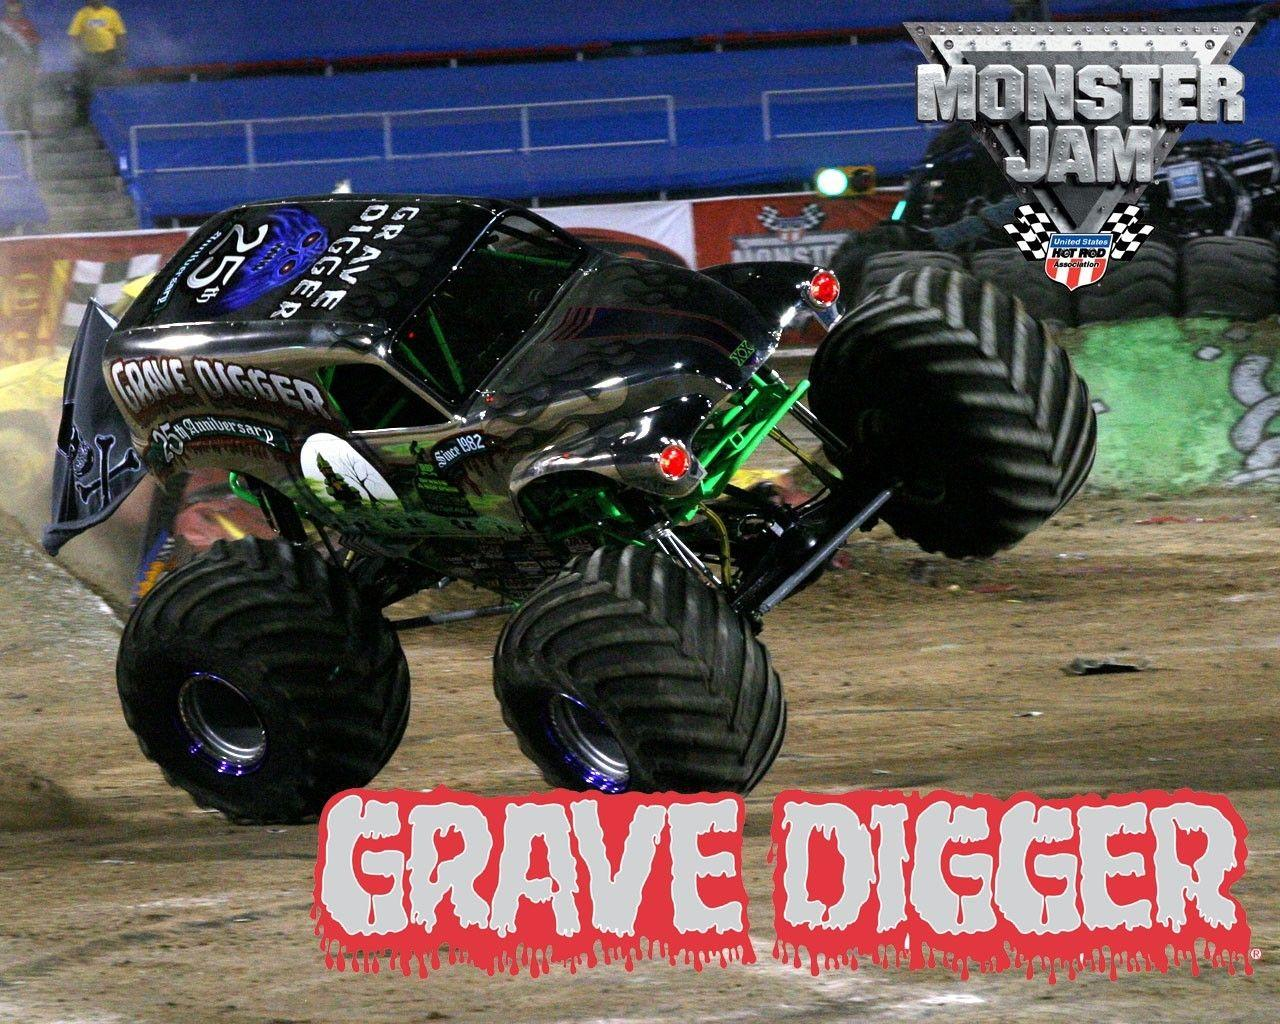 Cars monster truck grave digger jam wallpaper | AllWallpaper.in #120 ...